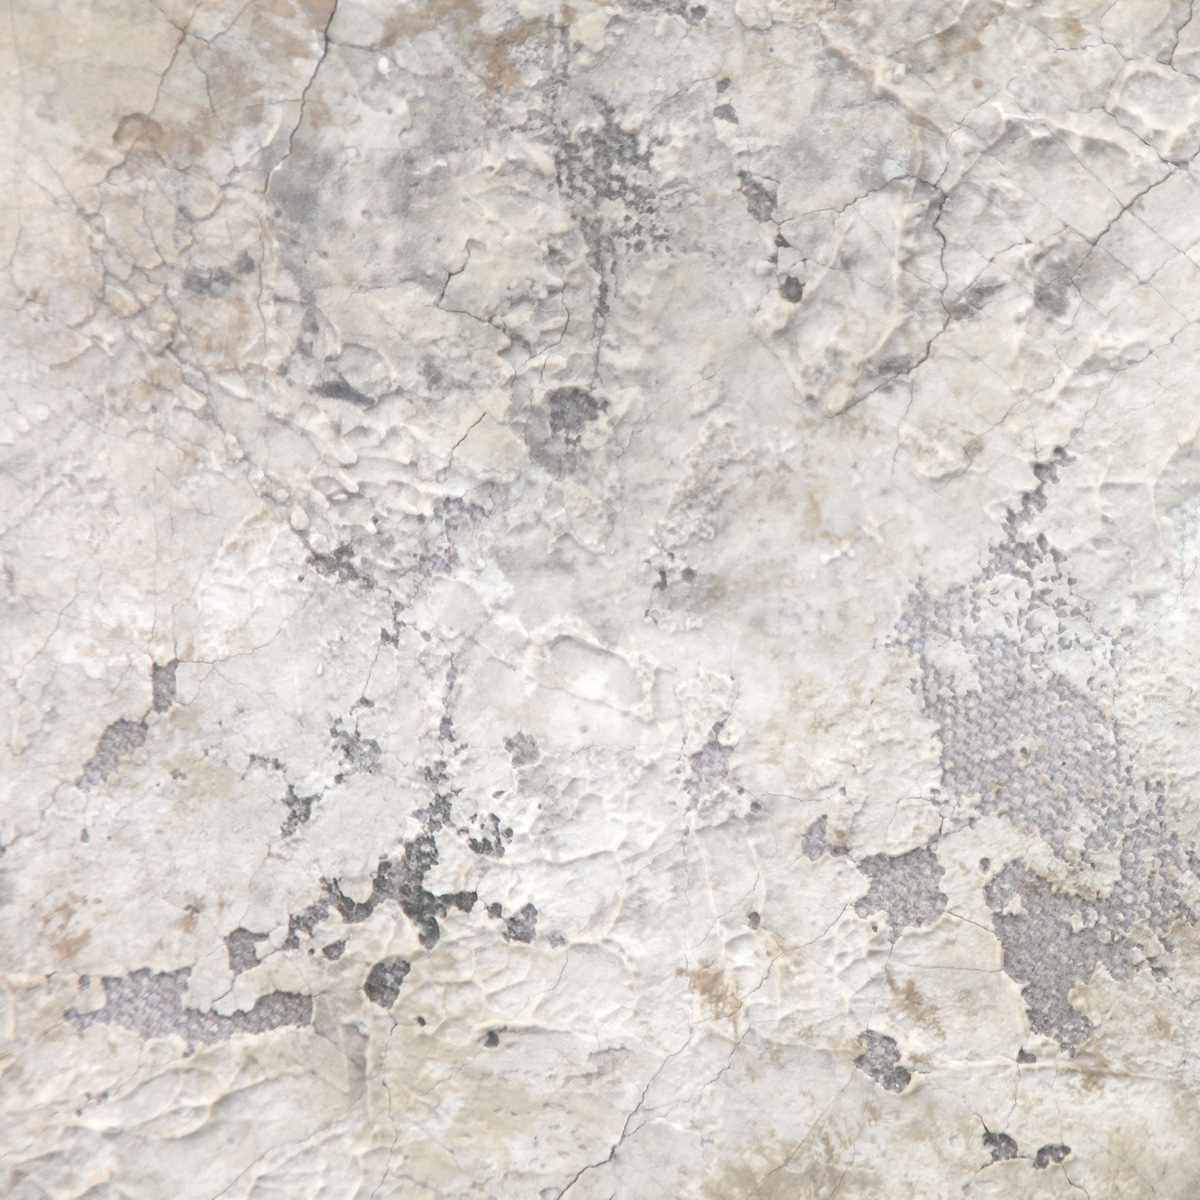 rustic neutral 1 cracked plaster styling surface for photographers detail.jpg